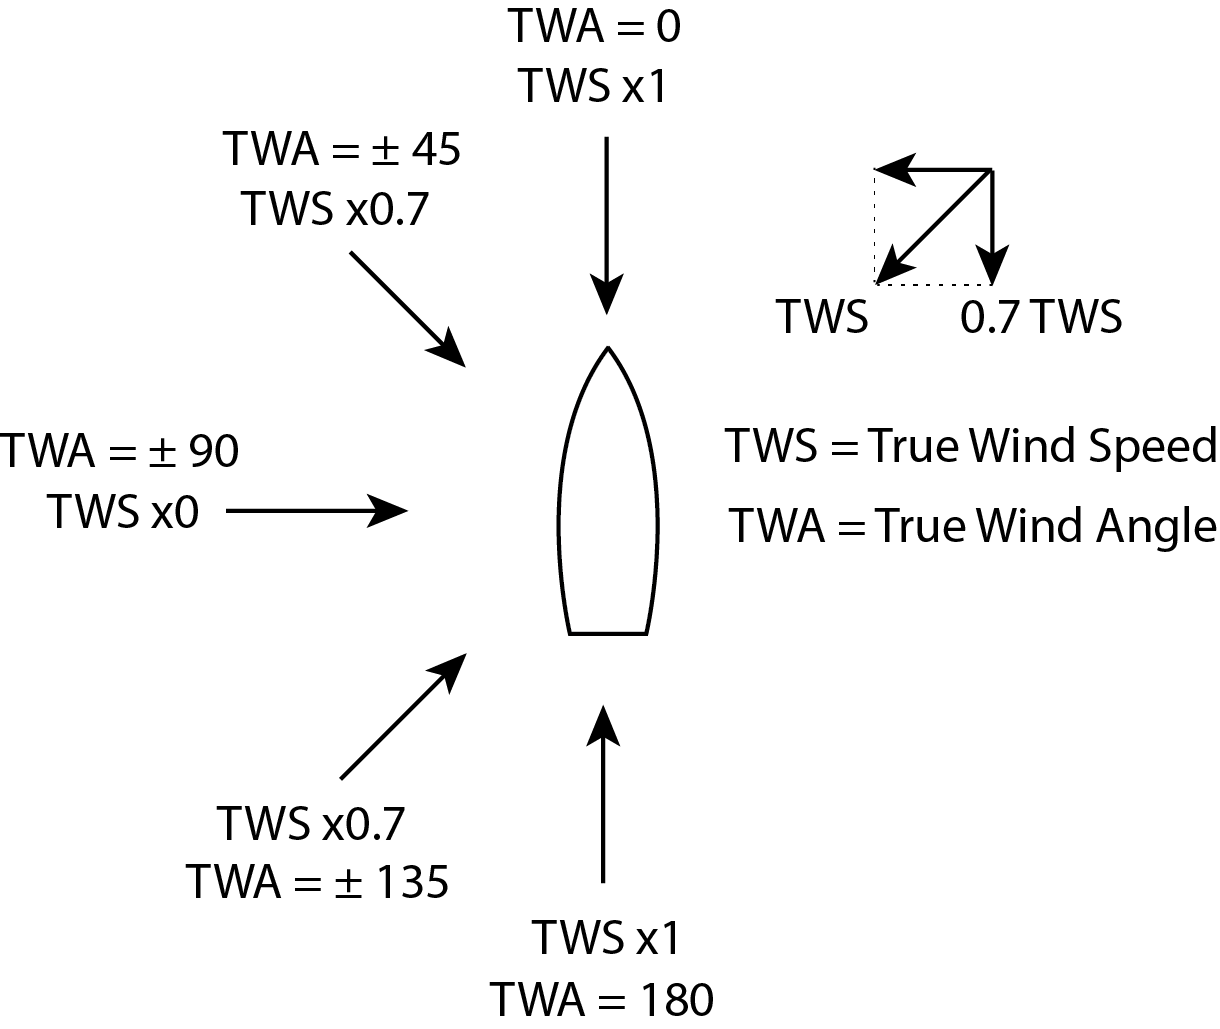 hight resolution of figure 3 estimating effect of tws at various twa based on head wind and tail wind values for example with a tws of 10 kts at a twa 45 we would read